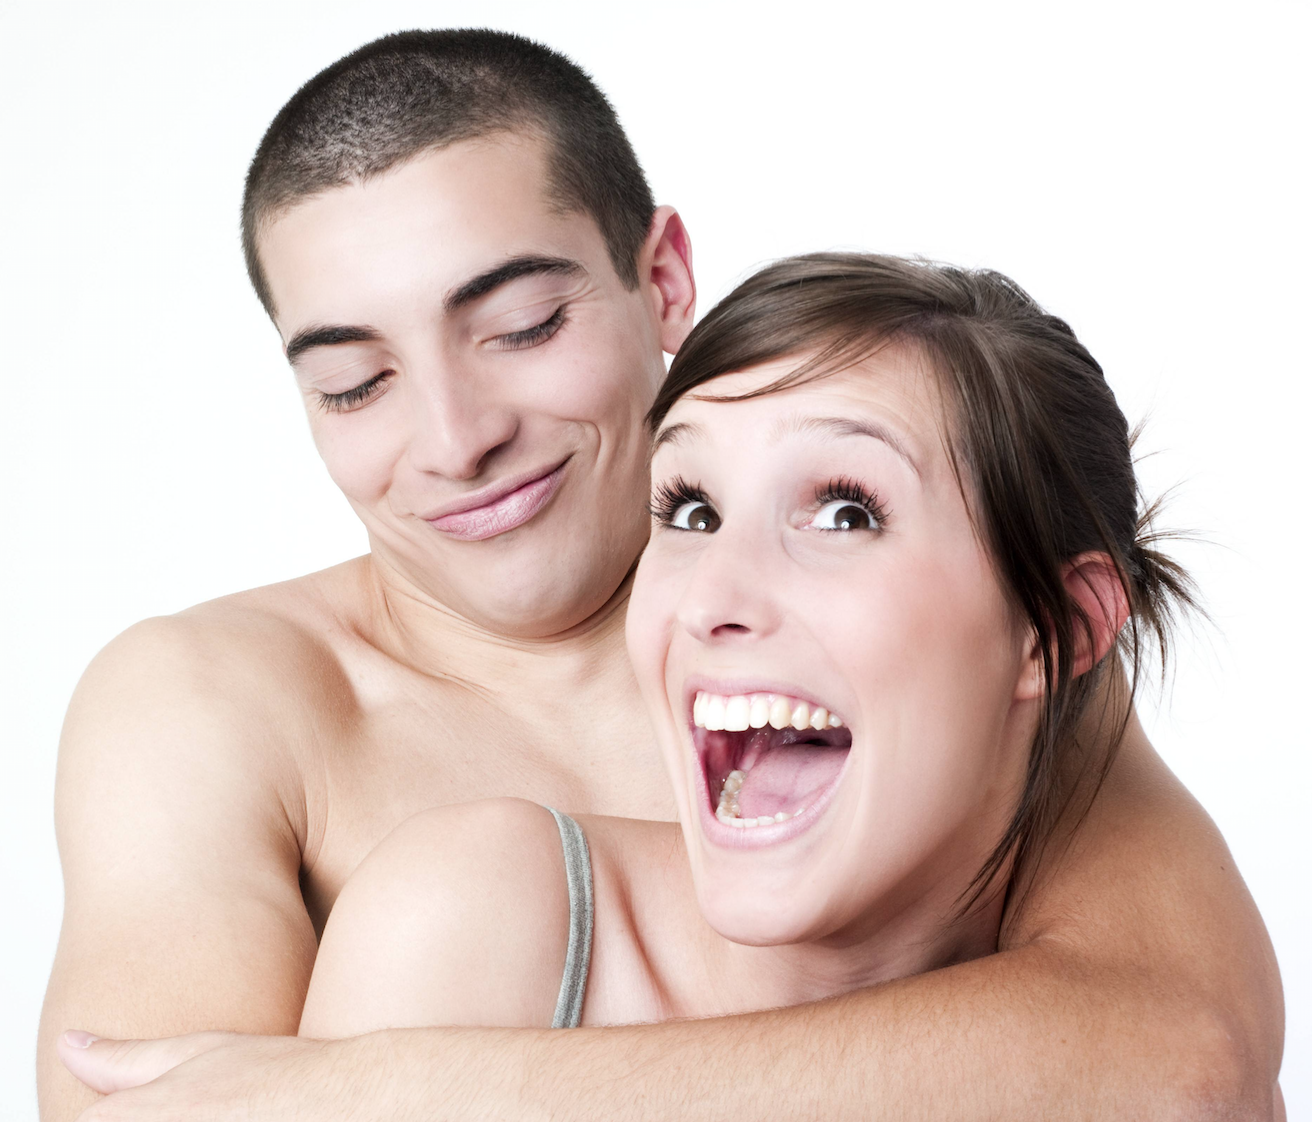 Is sexual chemistry a real thing? Dr. Jenn Gunsaullus, San Diego sexologist, weighs in.